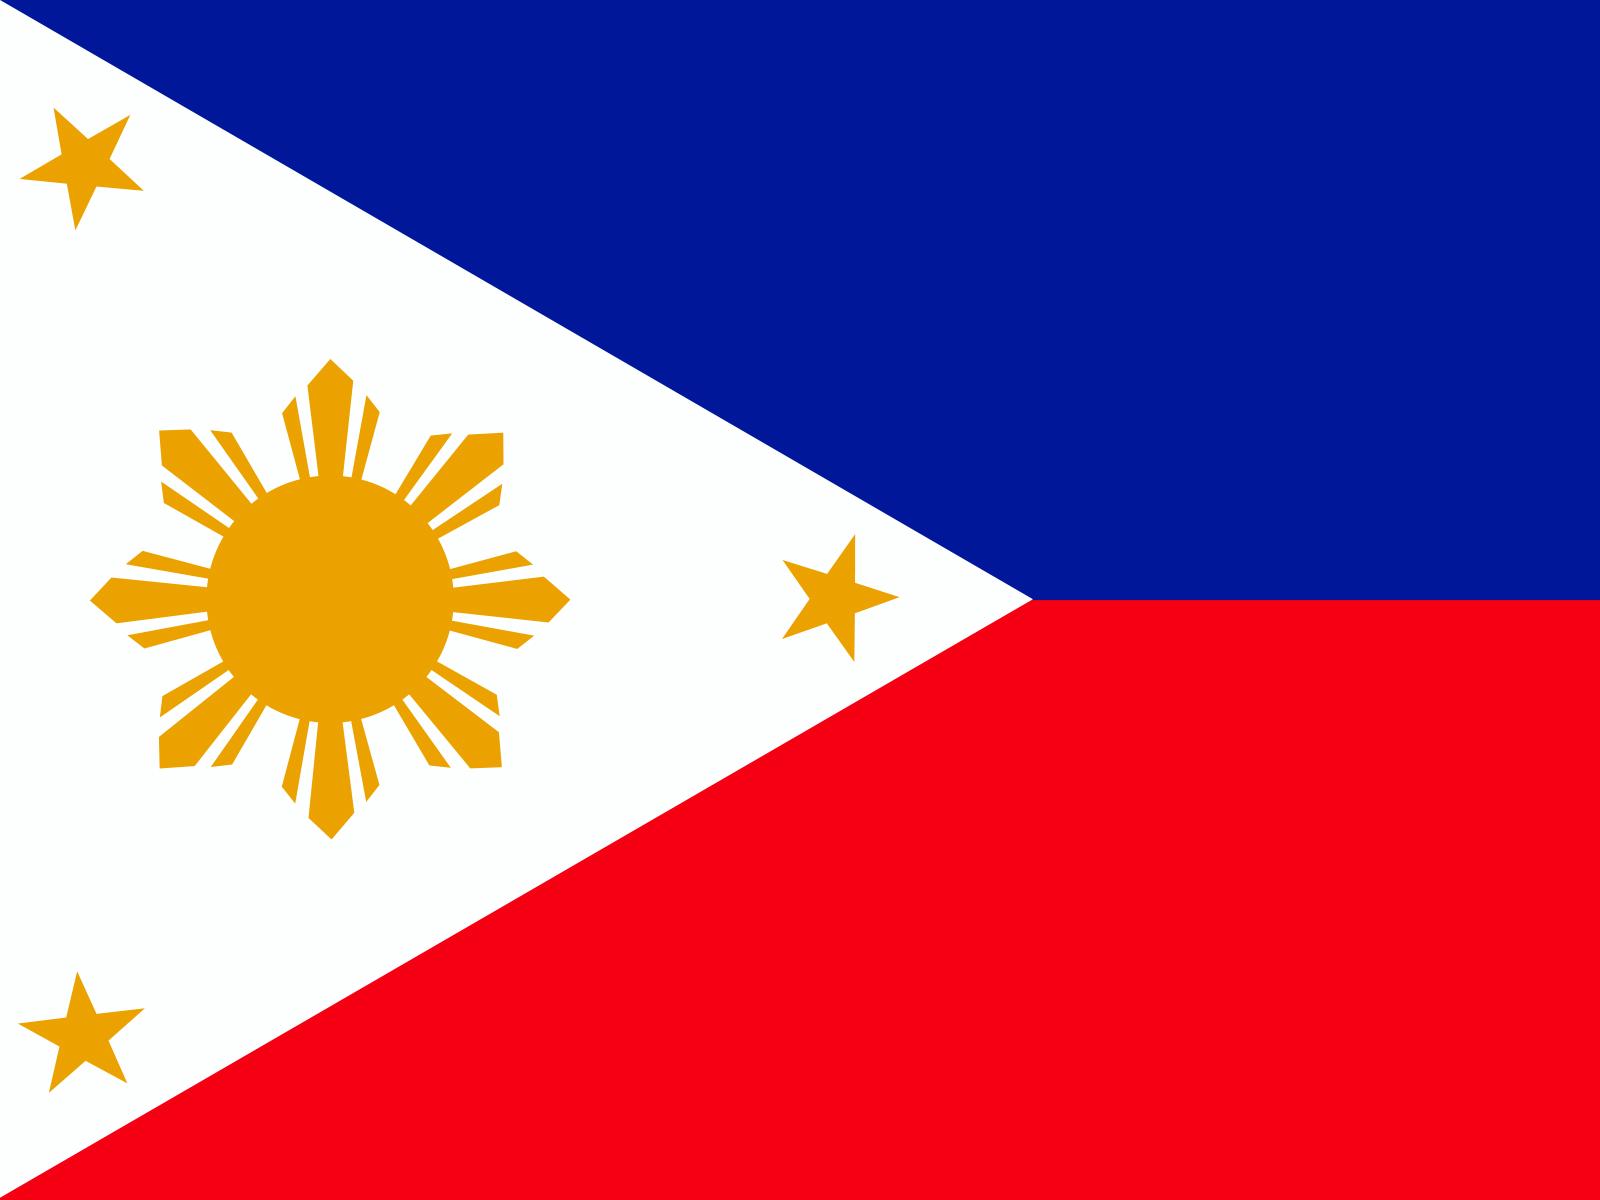 Philippines flag backgrounds blue flag red white templates philippines flag powerpoint templates toneelgroepblik Images